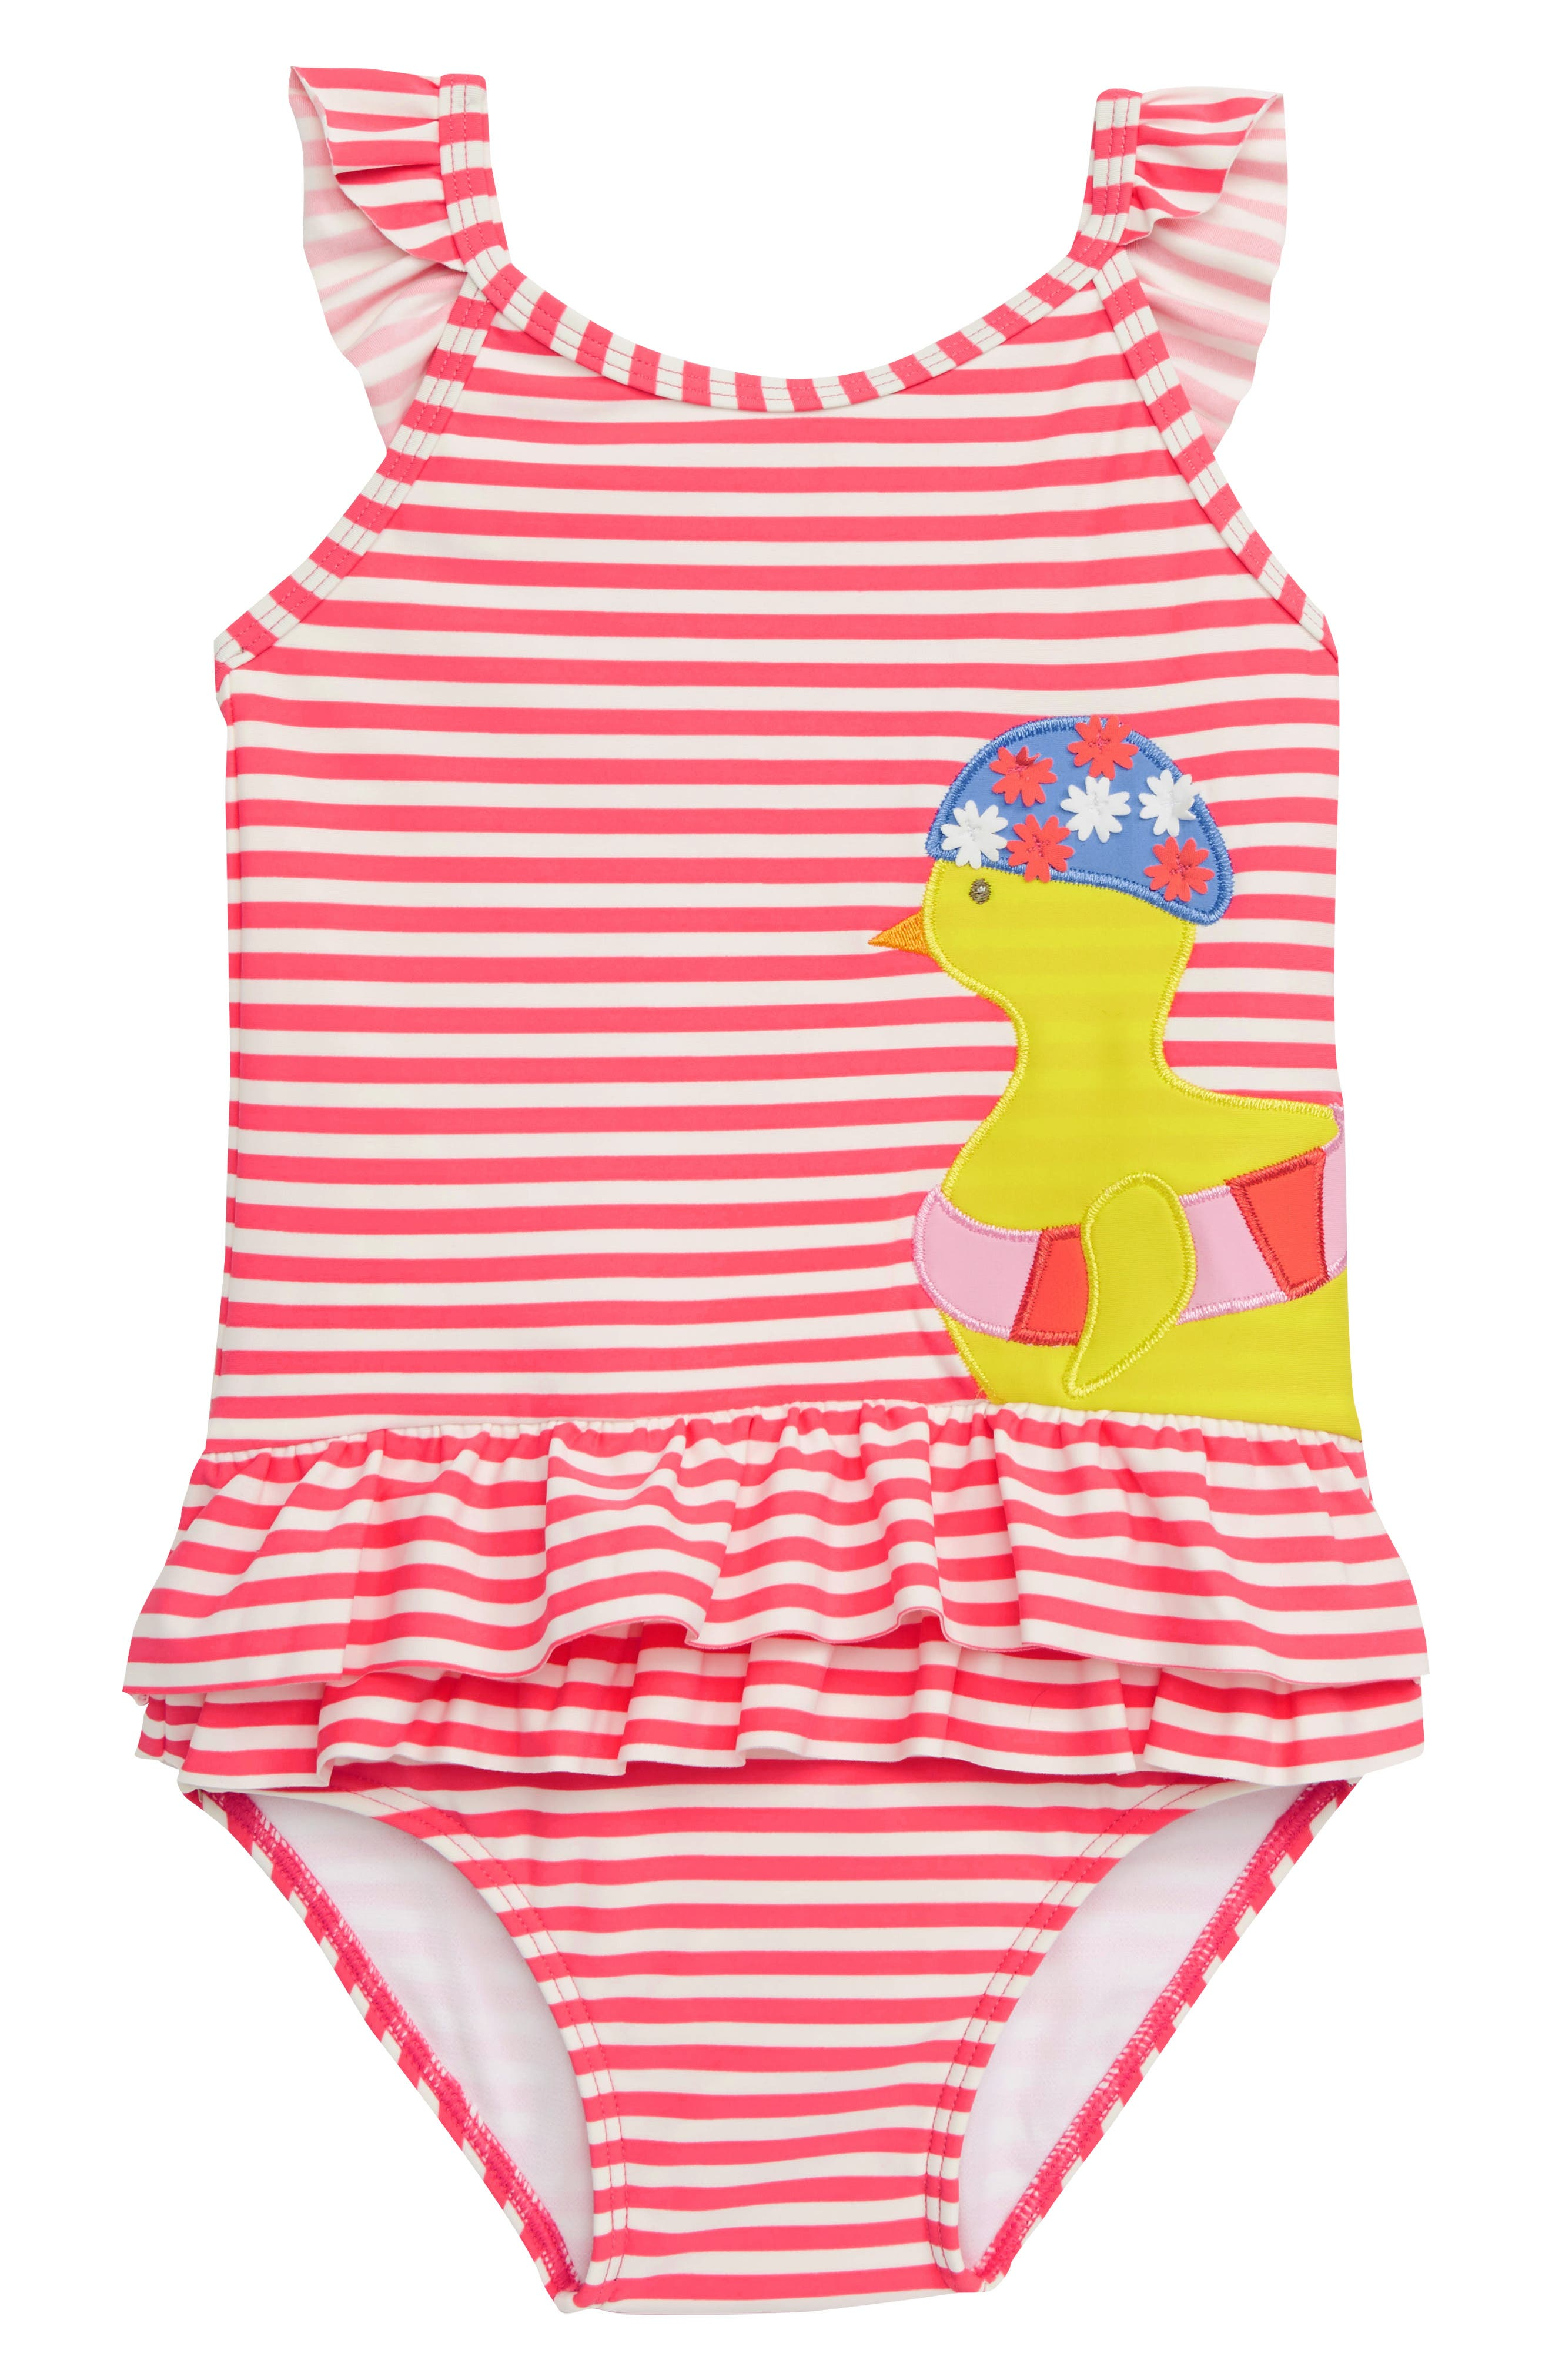 Pretty Frill Appliqué One-Piece Swimsuit,                             Main thumbnail 1, color,                             PNK BRUSH PINK/ IVORY CHICK